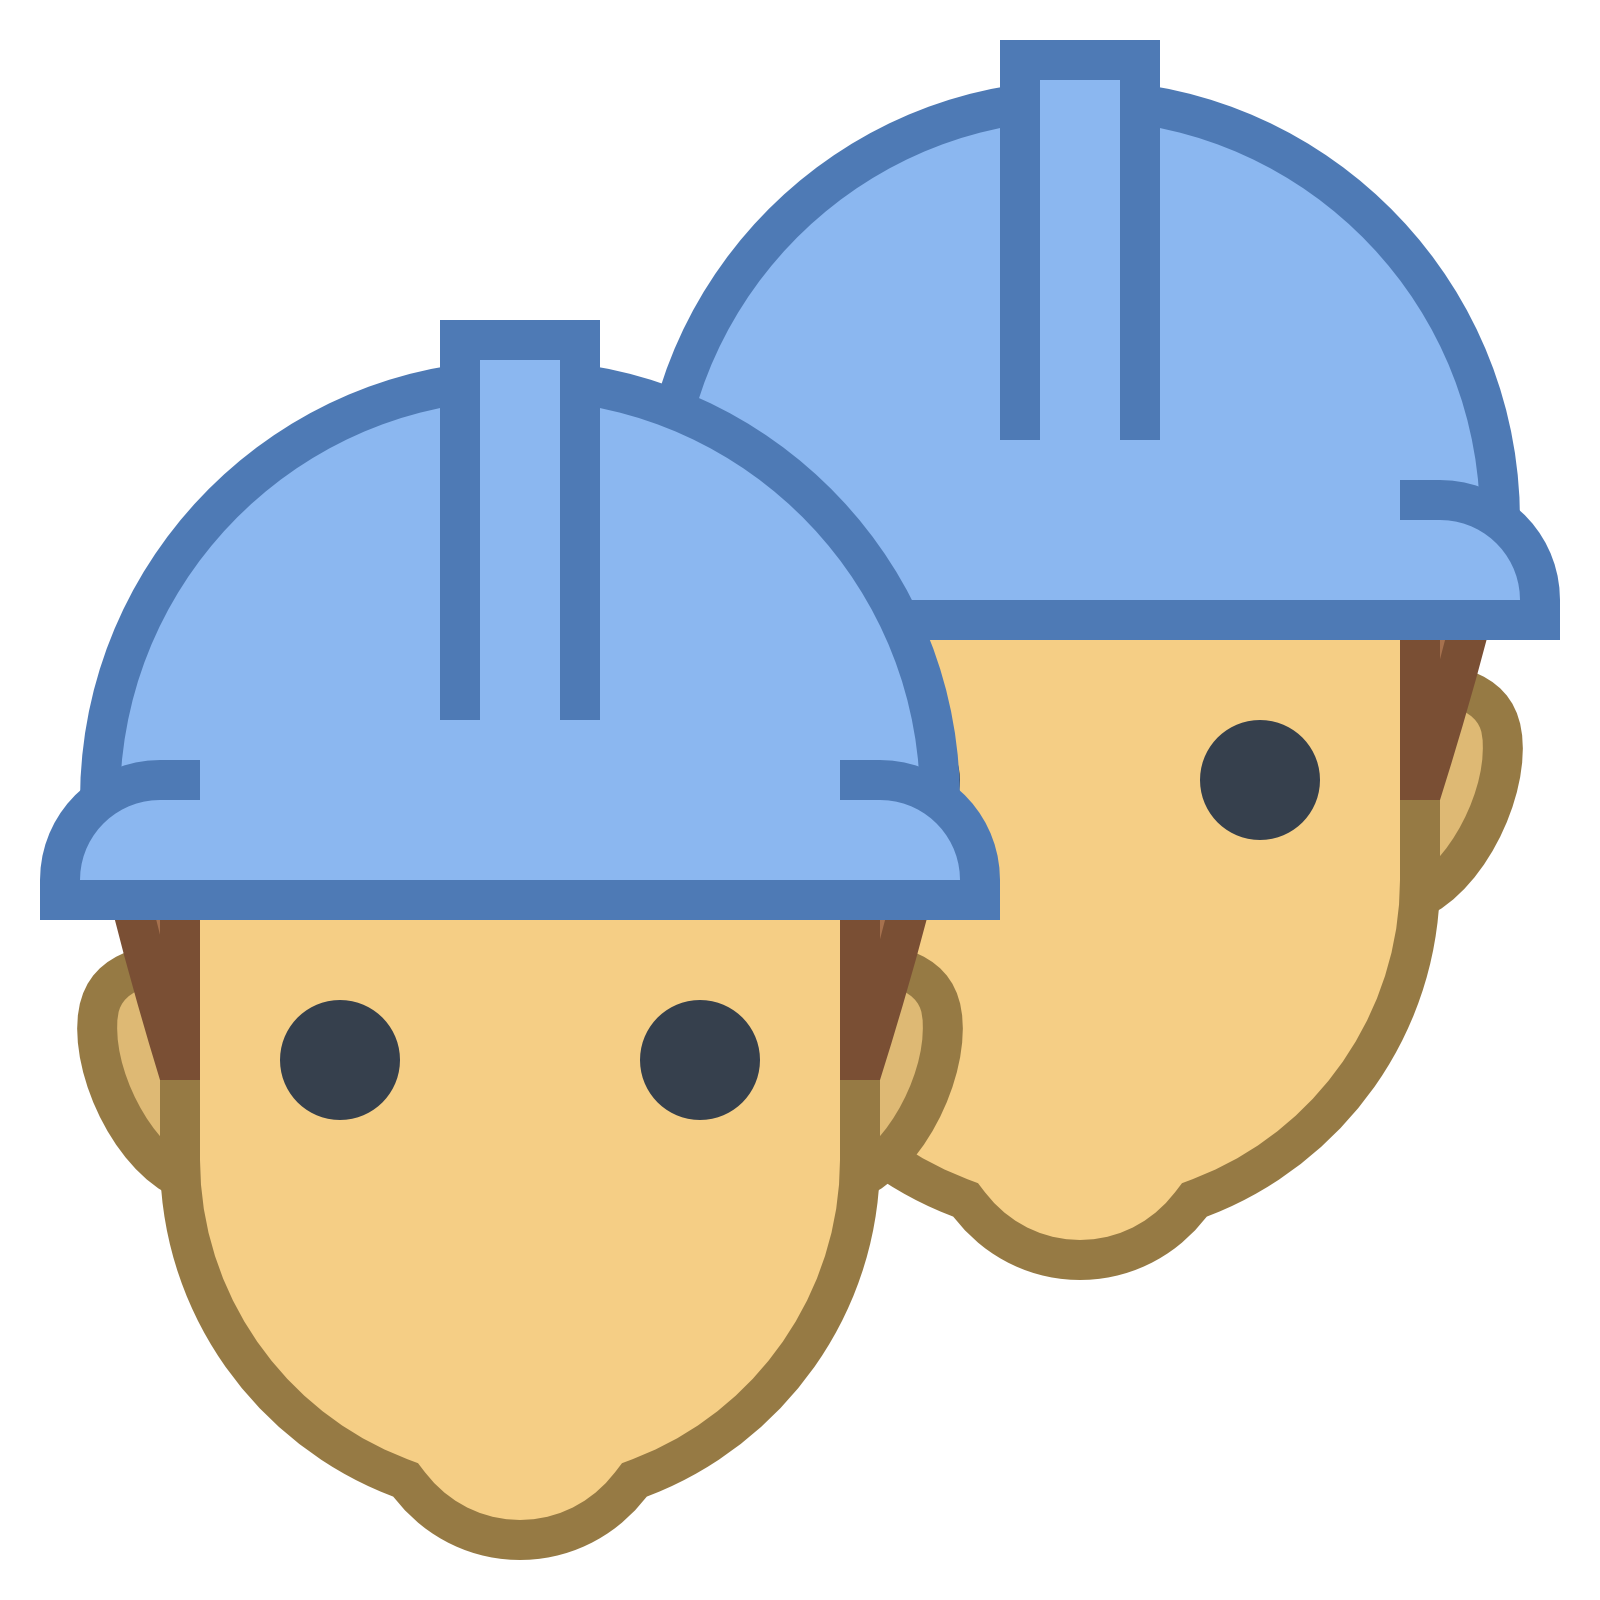 Construction helmet png. Safety transparent hd photo